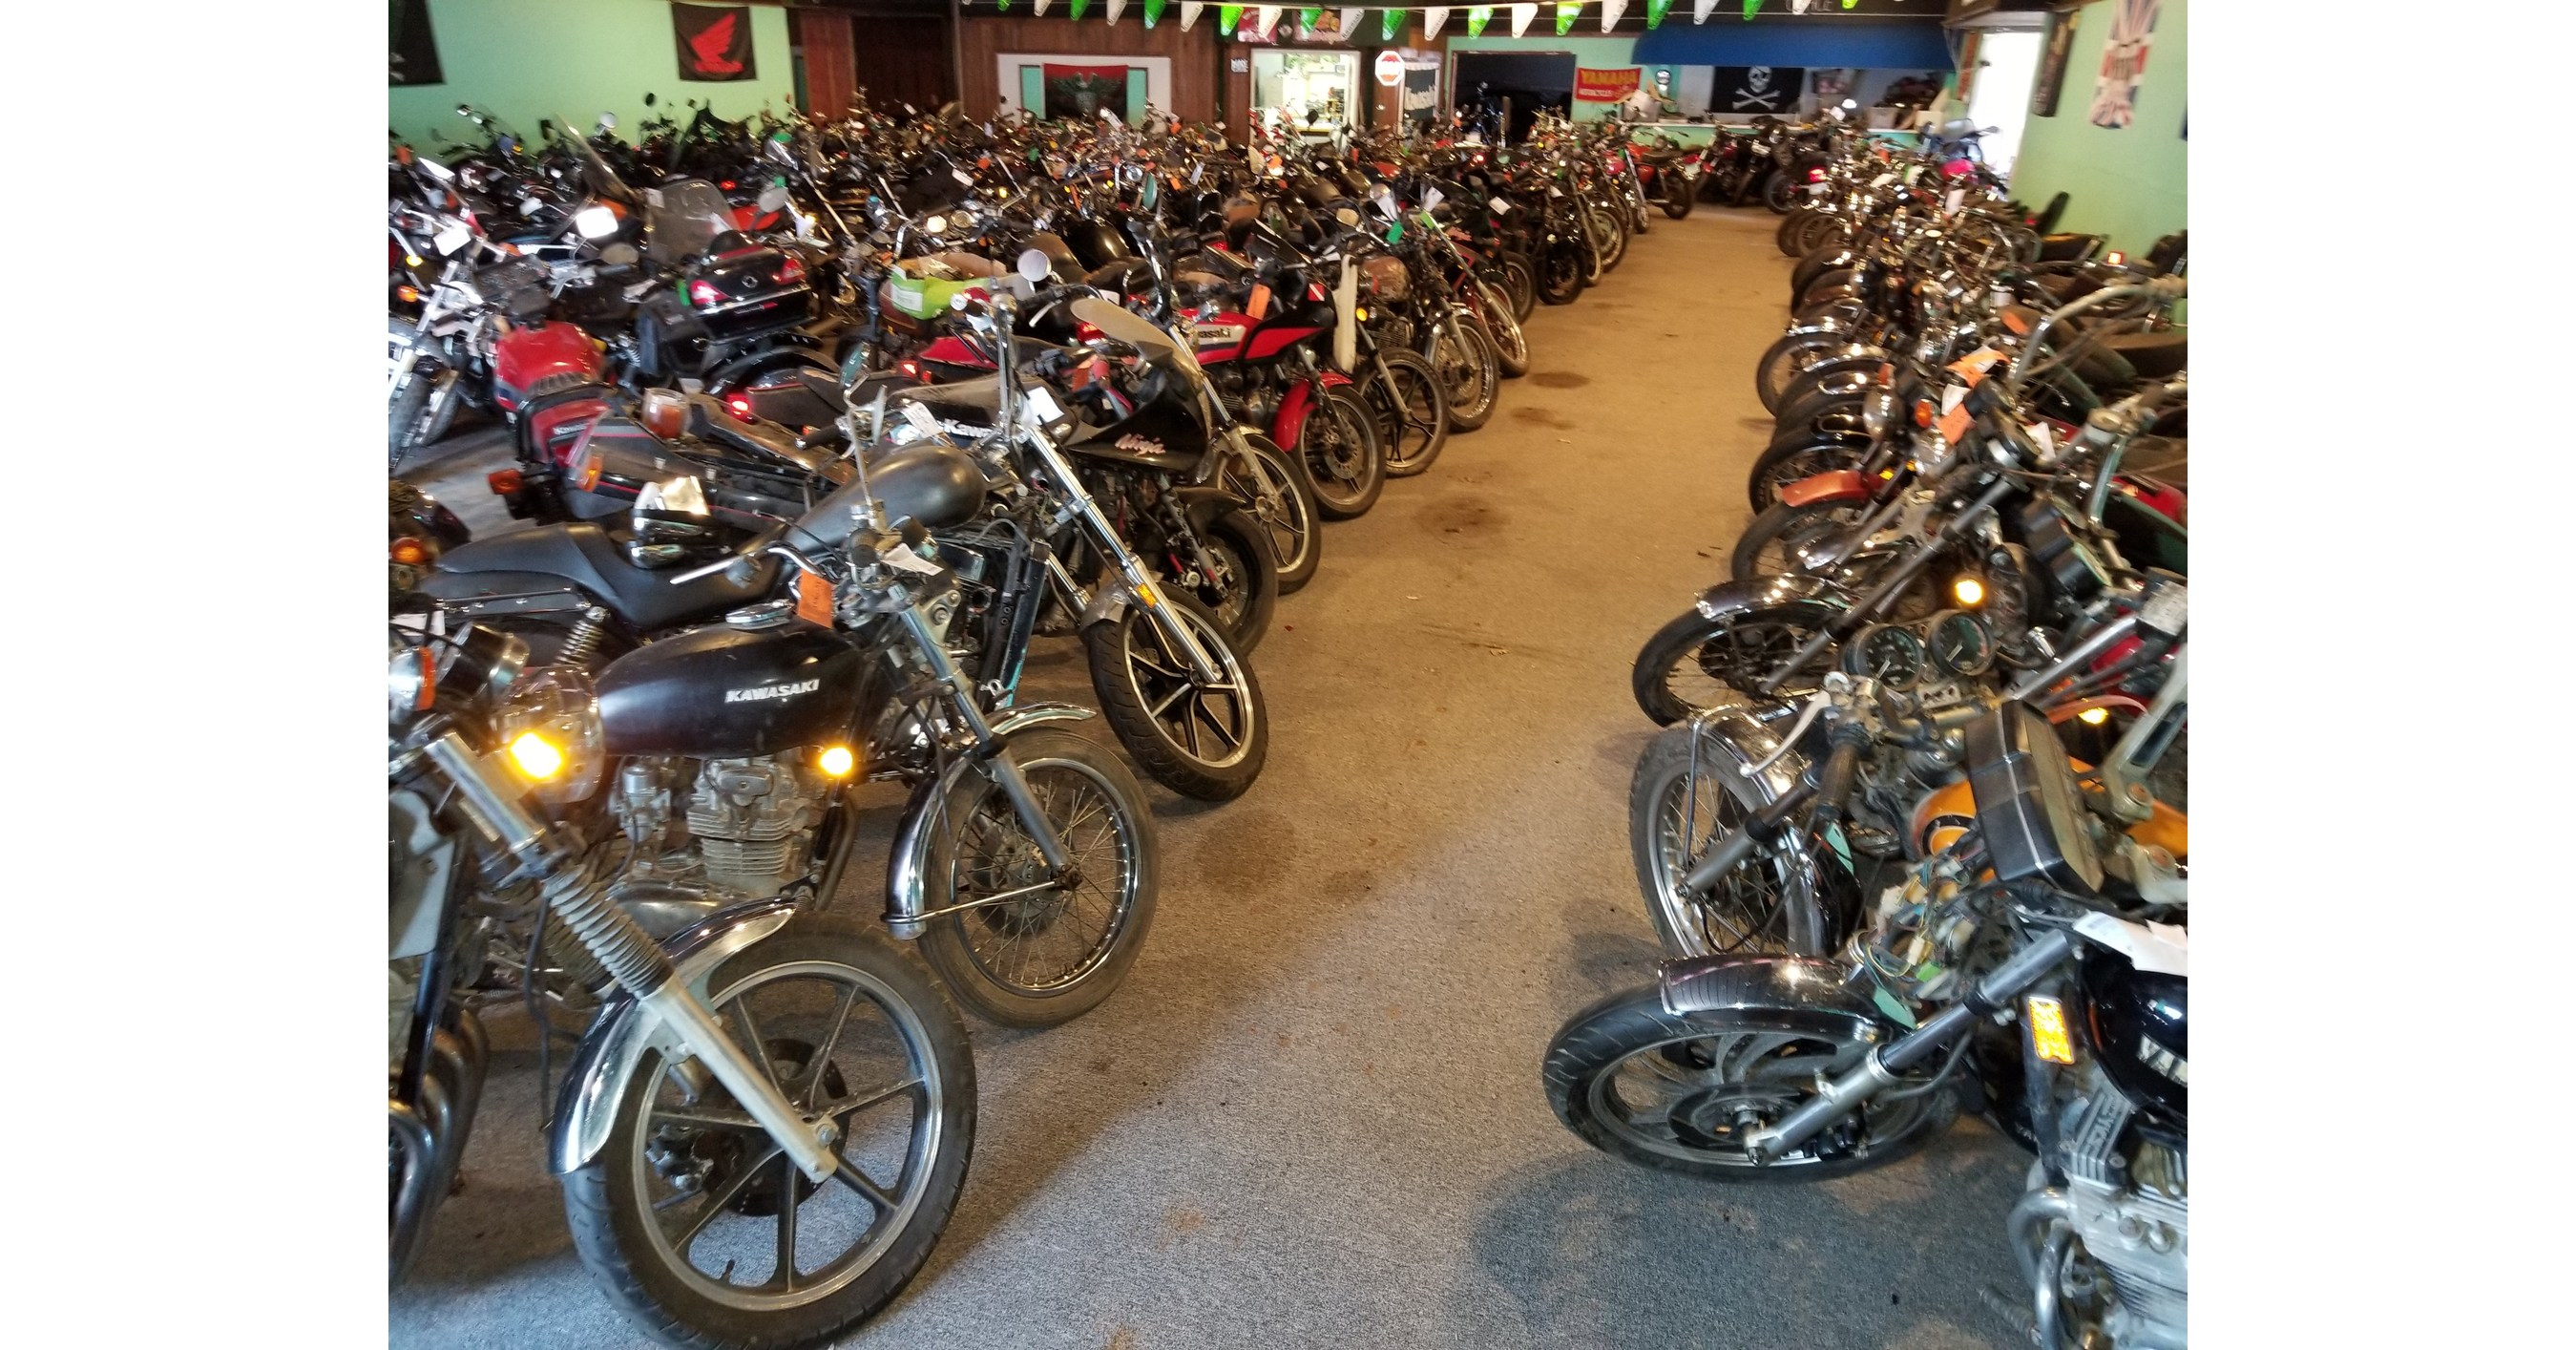 25 Year Collection Of 500 Motorcycles To Be Sold At Auction